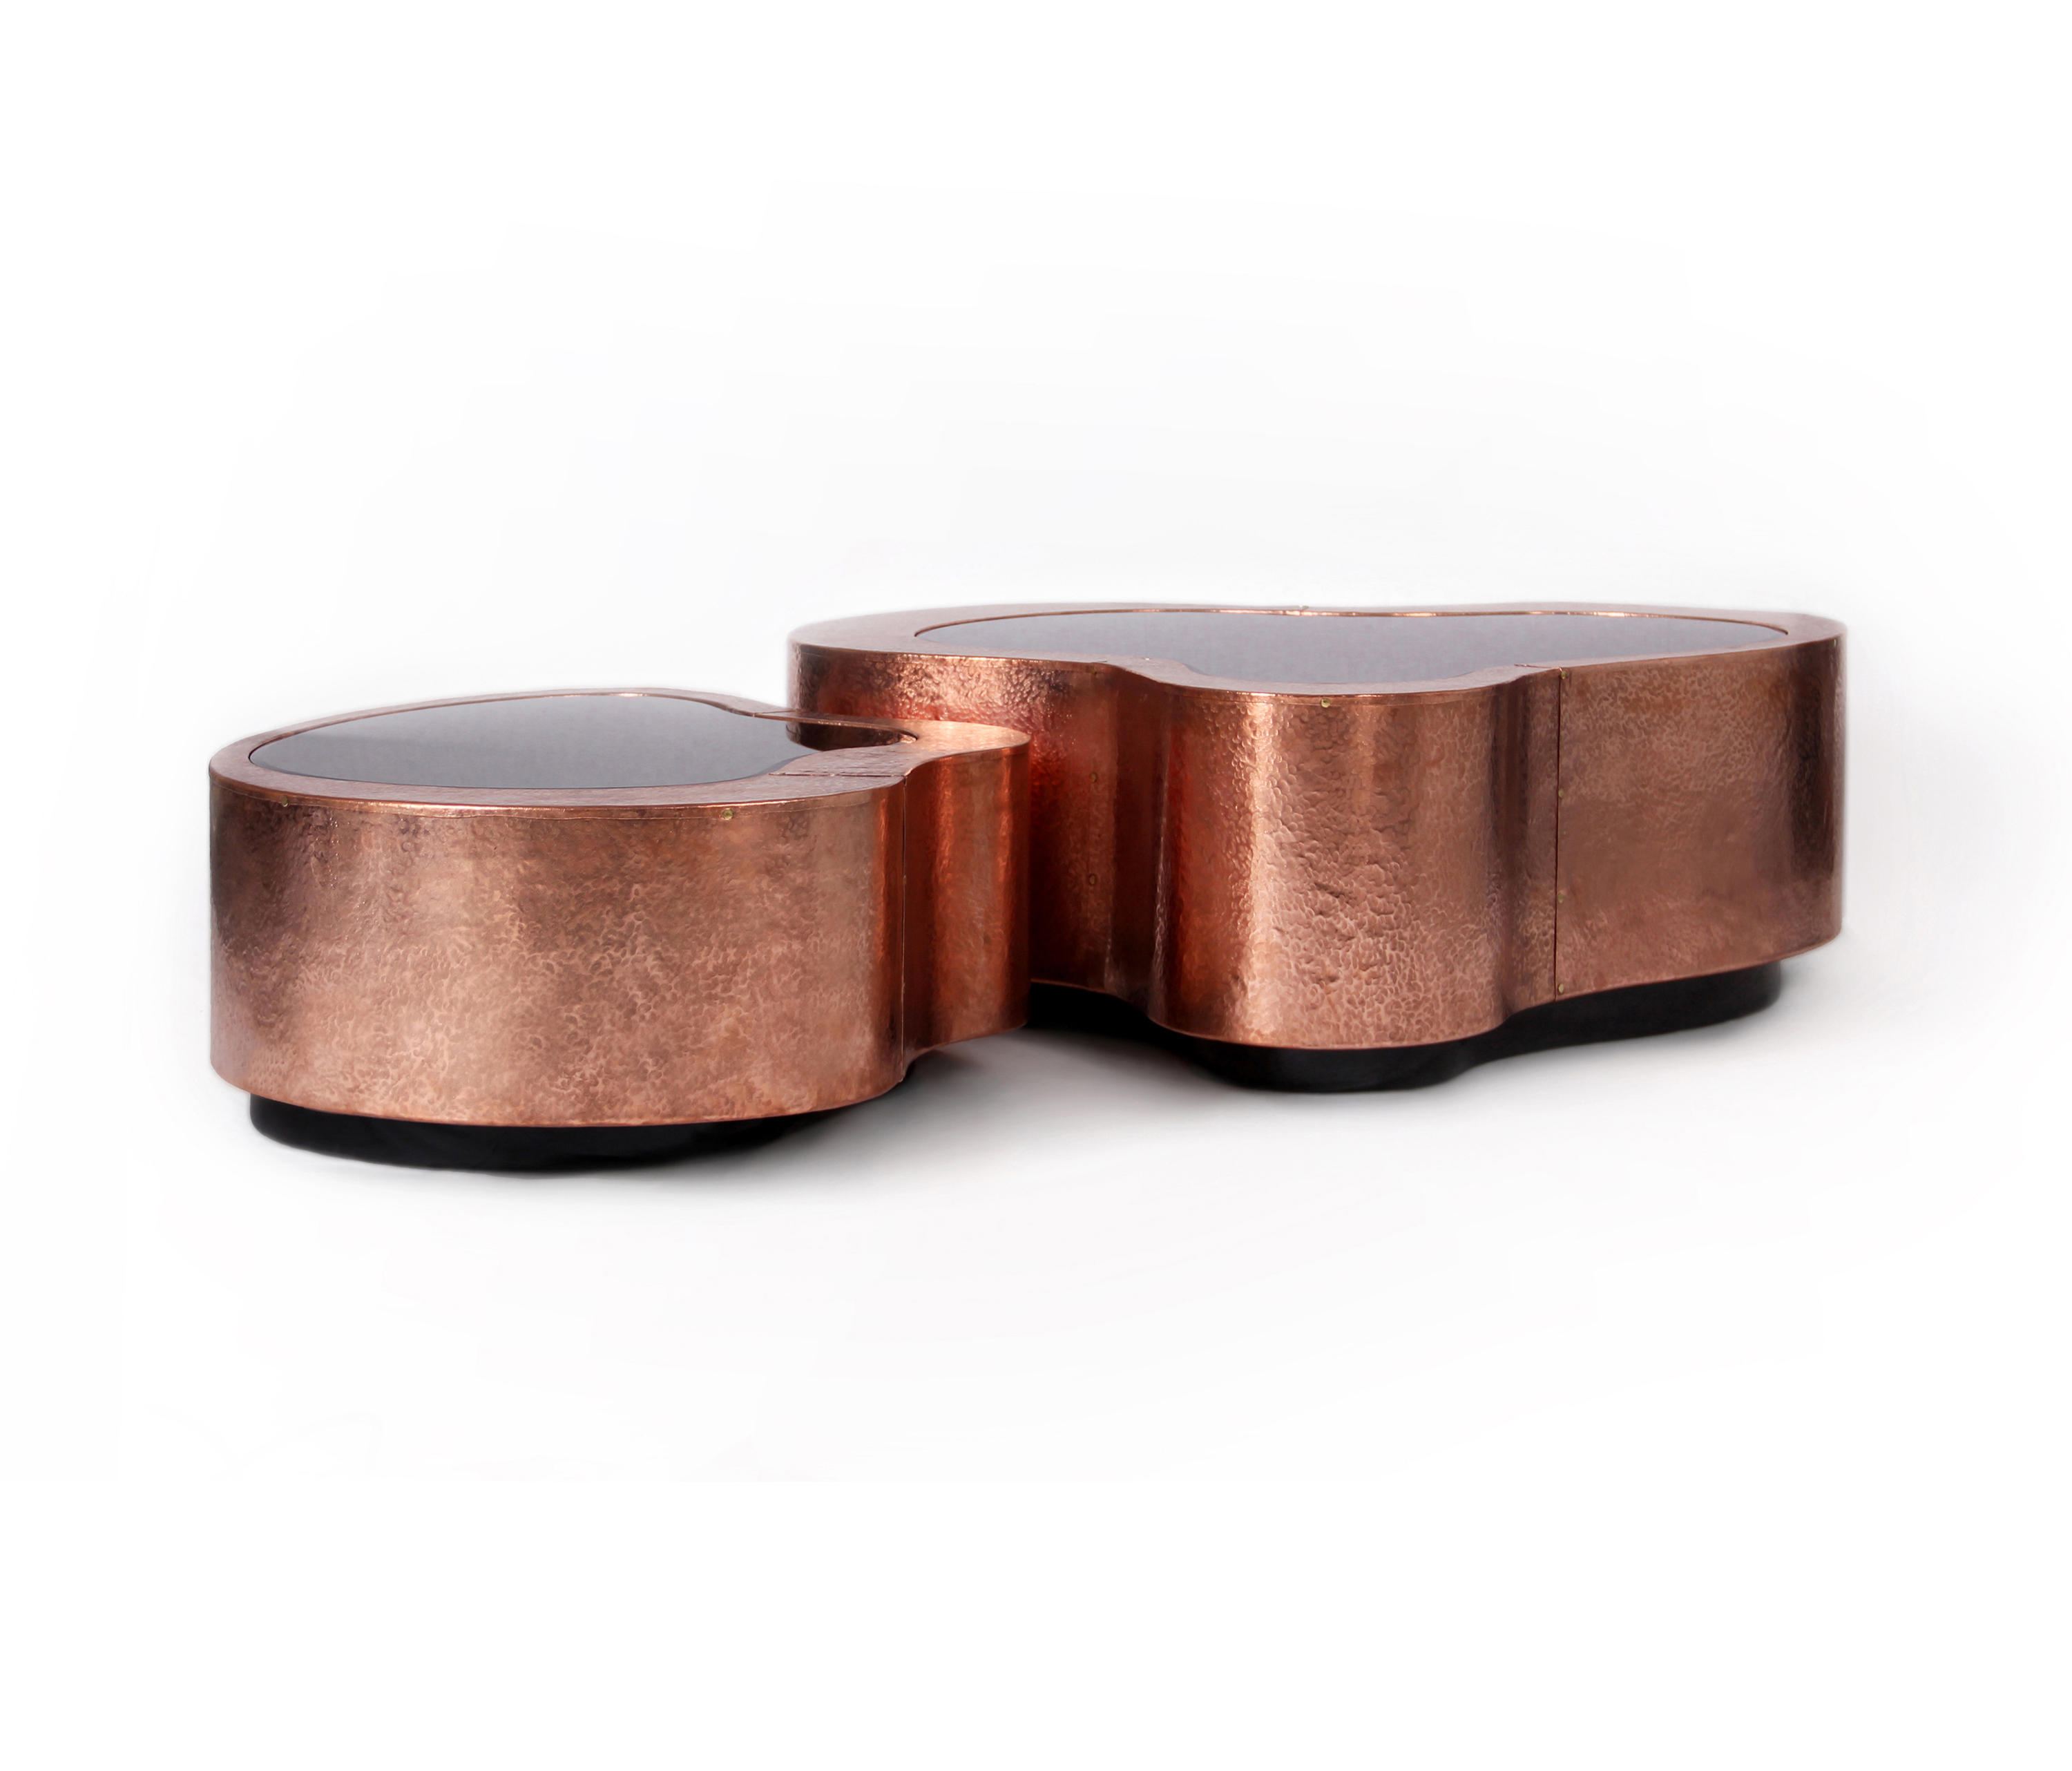 WAVE CENTER TABLE Coffee tables from Boca do lobo